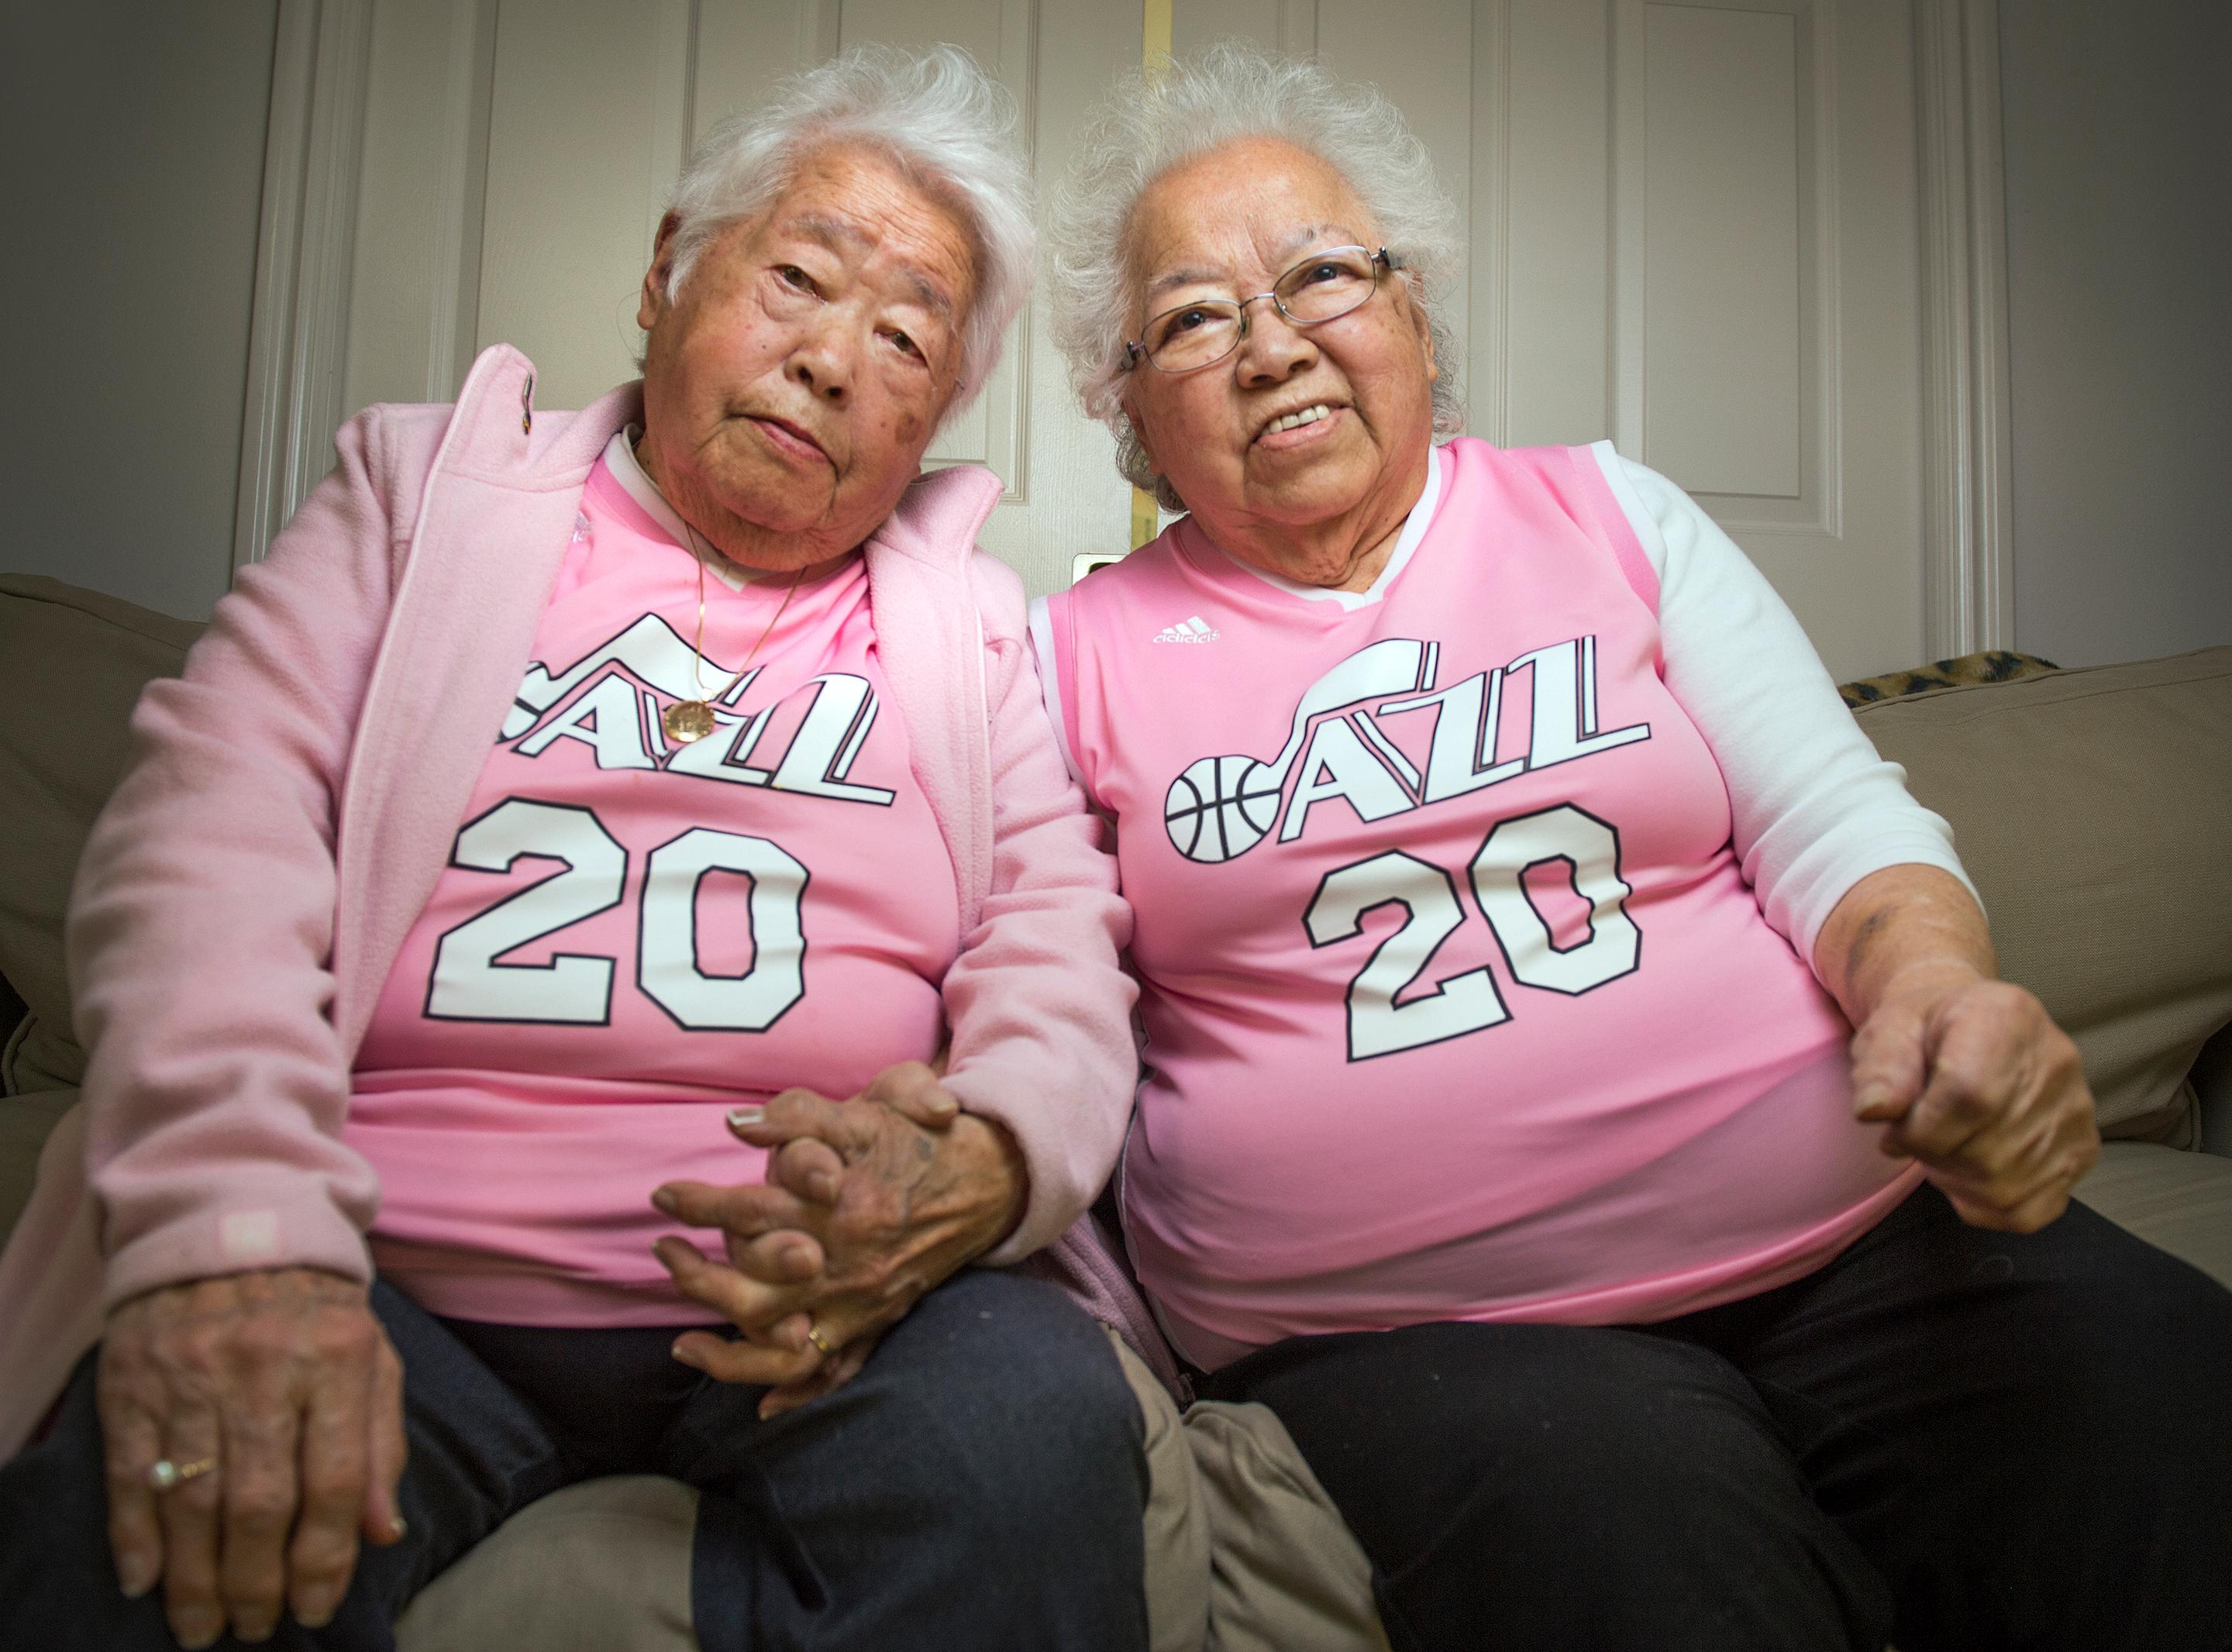 "Chances are that if you've been to a Utah Jazz basketball game, you've seen sister Yeiko Homma and Keiko Mori on the jumbo screens. The two women always dressed in pink jerseys at Jazz games are known locally as ""The Pink Grandmas."" The two are ready to watch game 7 of the playoff series between the Utah Jazz and the Los Angeles Clippers, Sunday, April 30, 2017.   (Leah Hogsten /The Salt Lake Tribune via AP)"